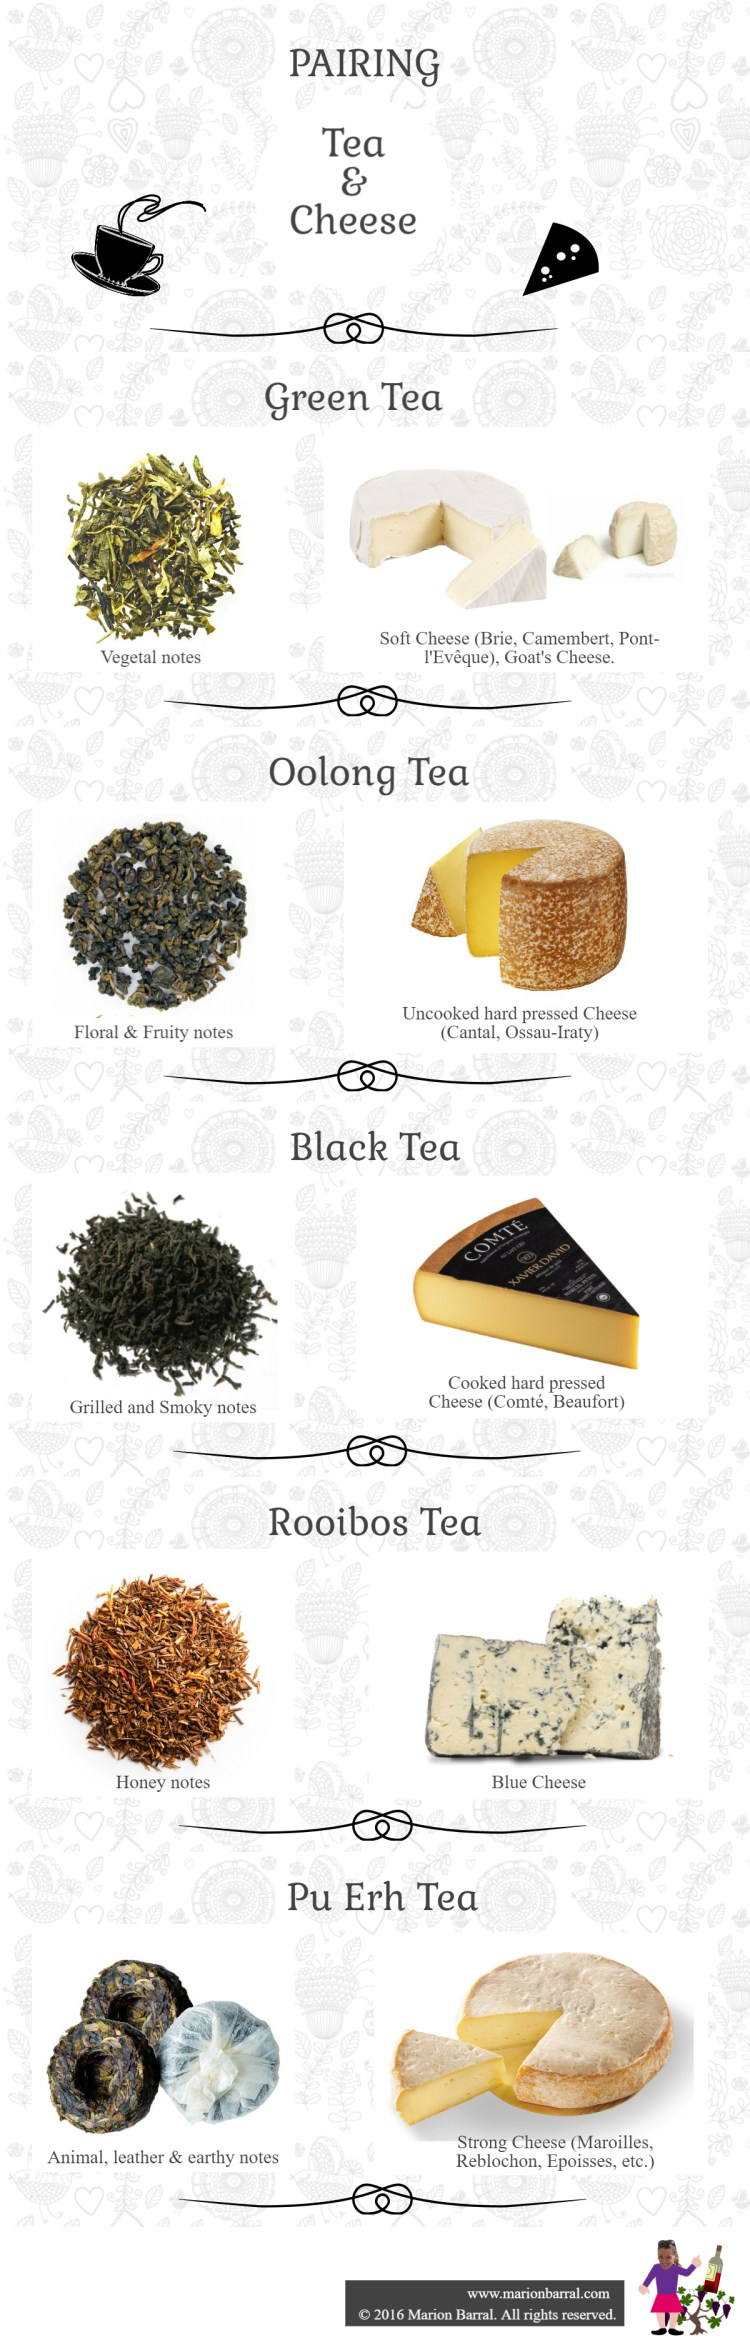 infographics about tea and cheese pairing